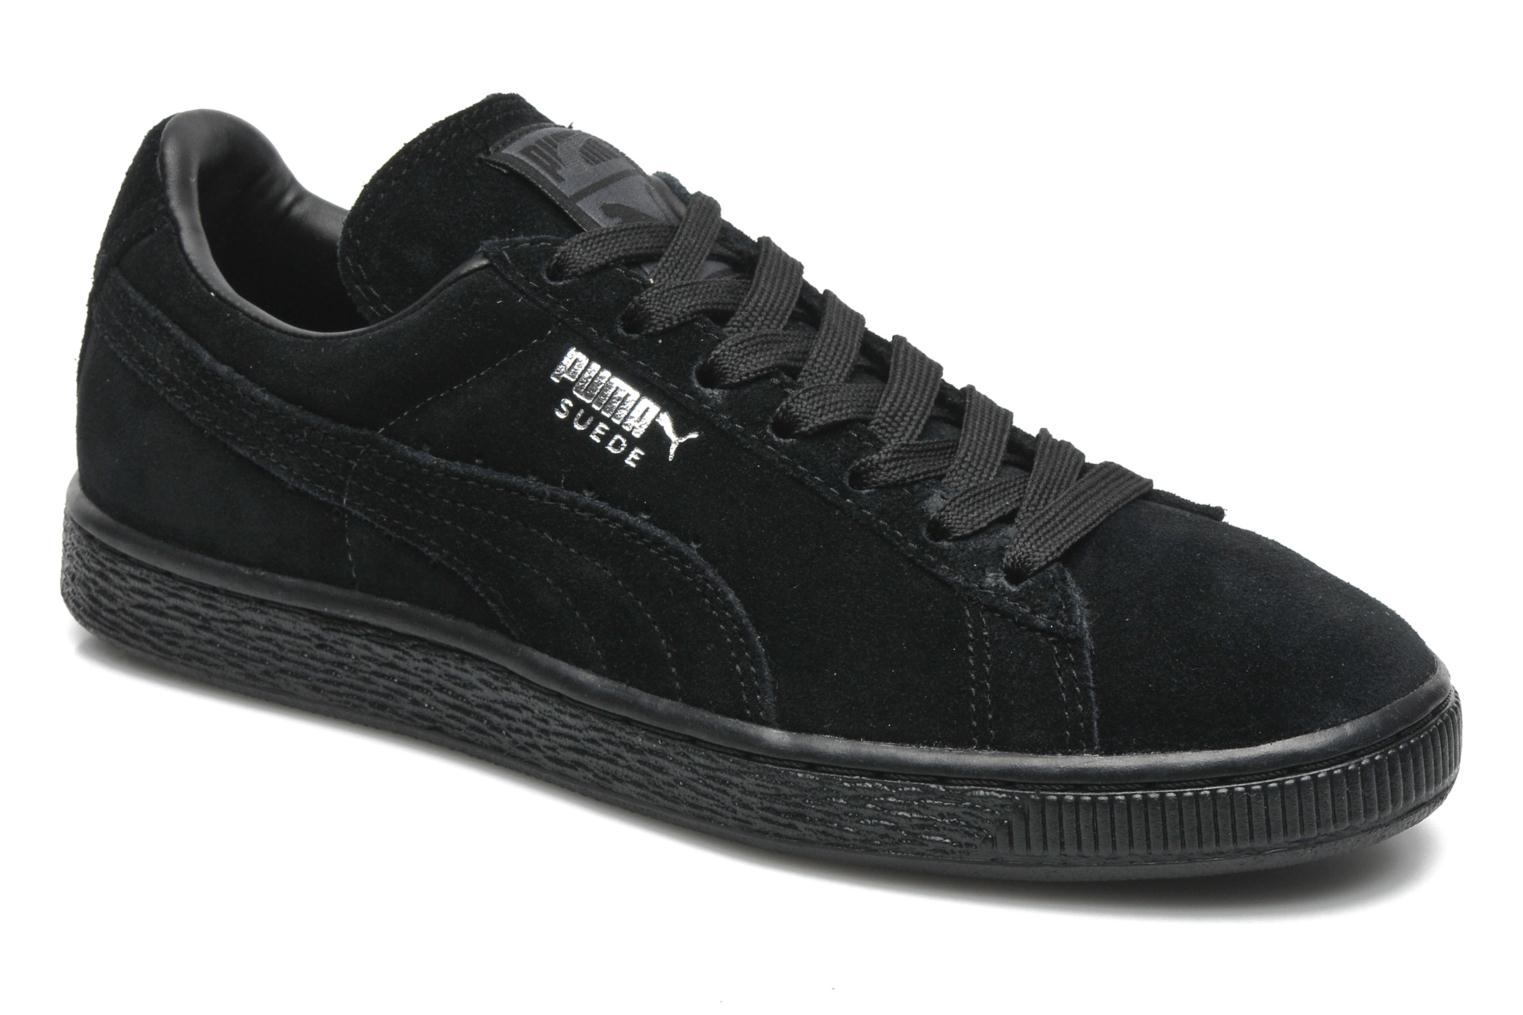 Collection Puma Puma Chaussures Chaussures Nouvelle kPXZiTuO